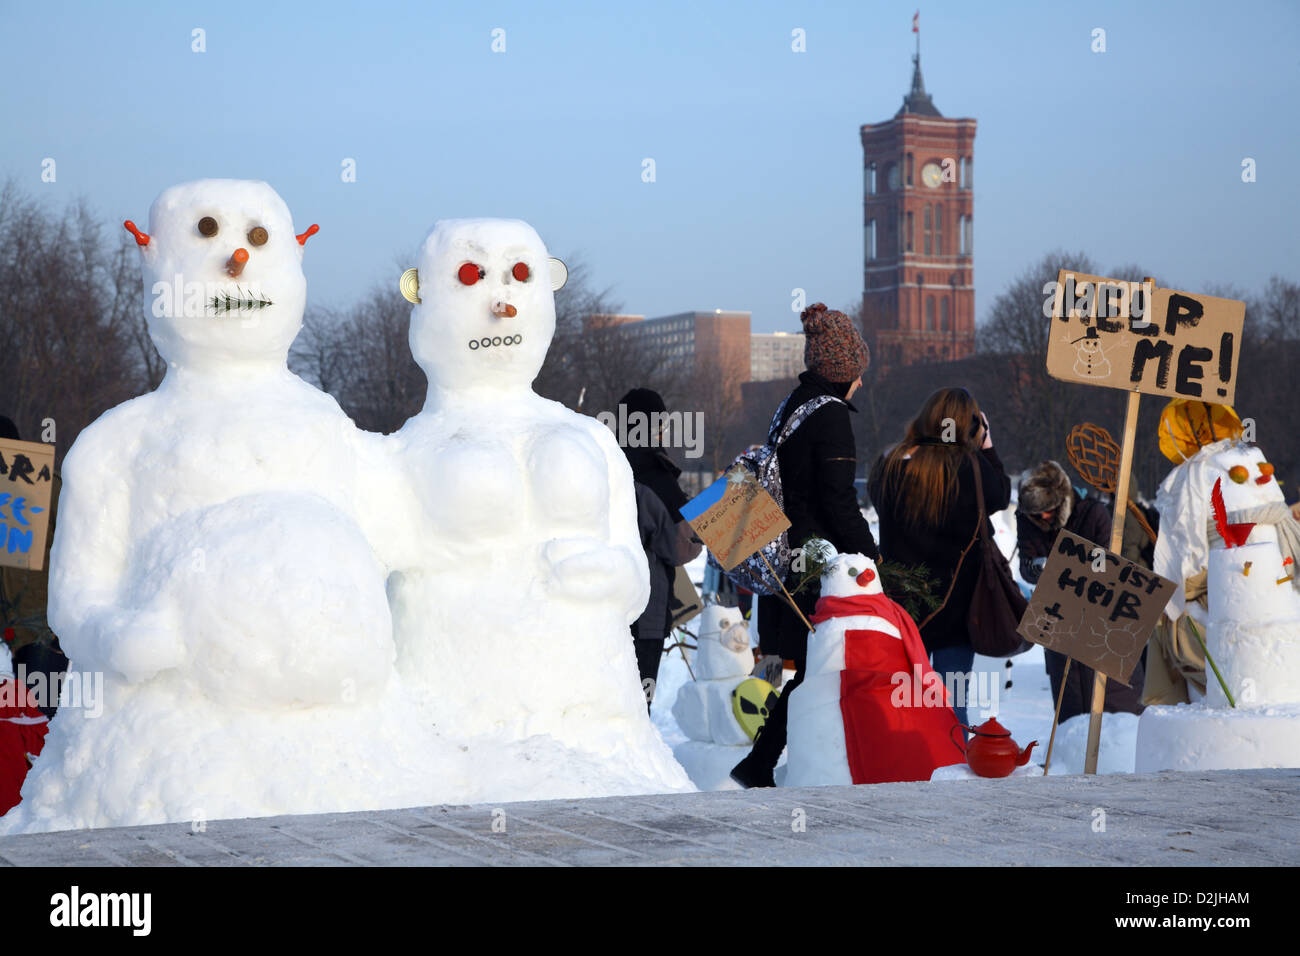 Berlin, Germany, Snowman demonstration against climate change by the initiator Entegra - Stock Image